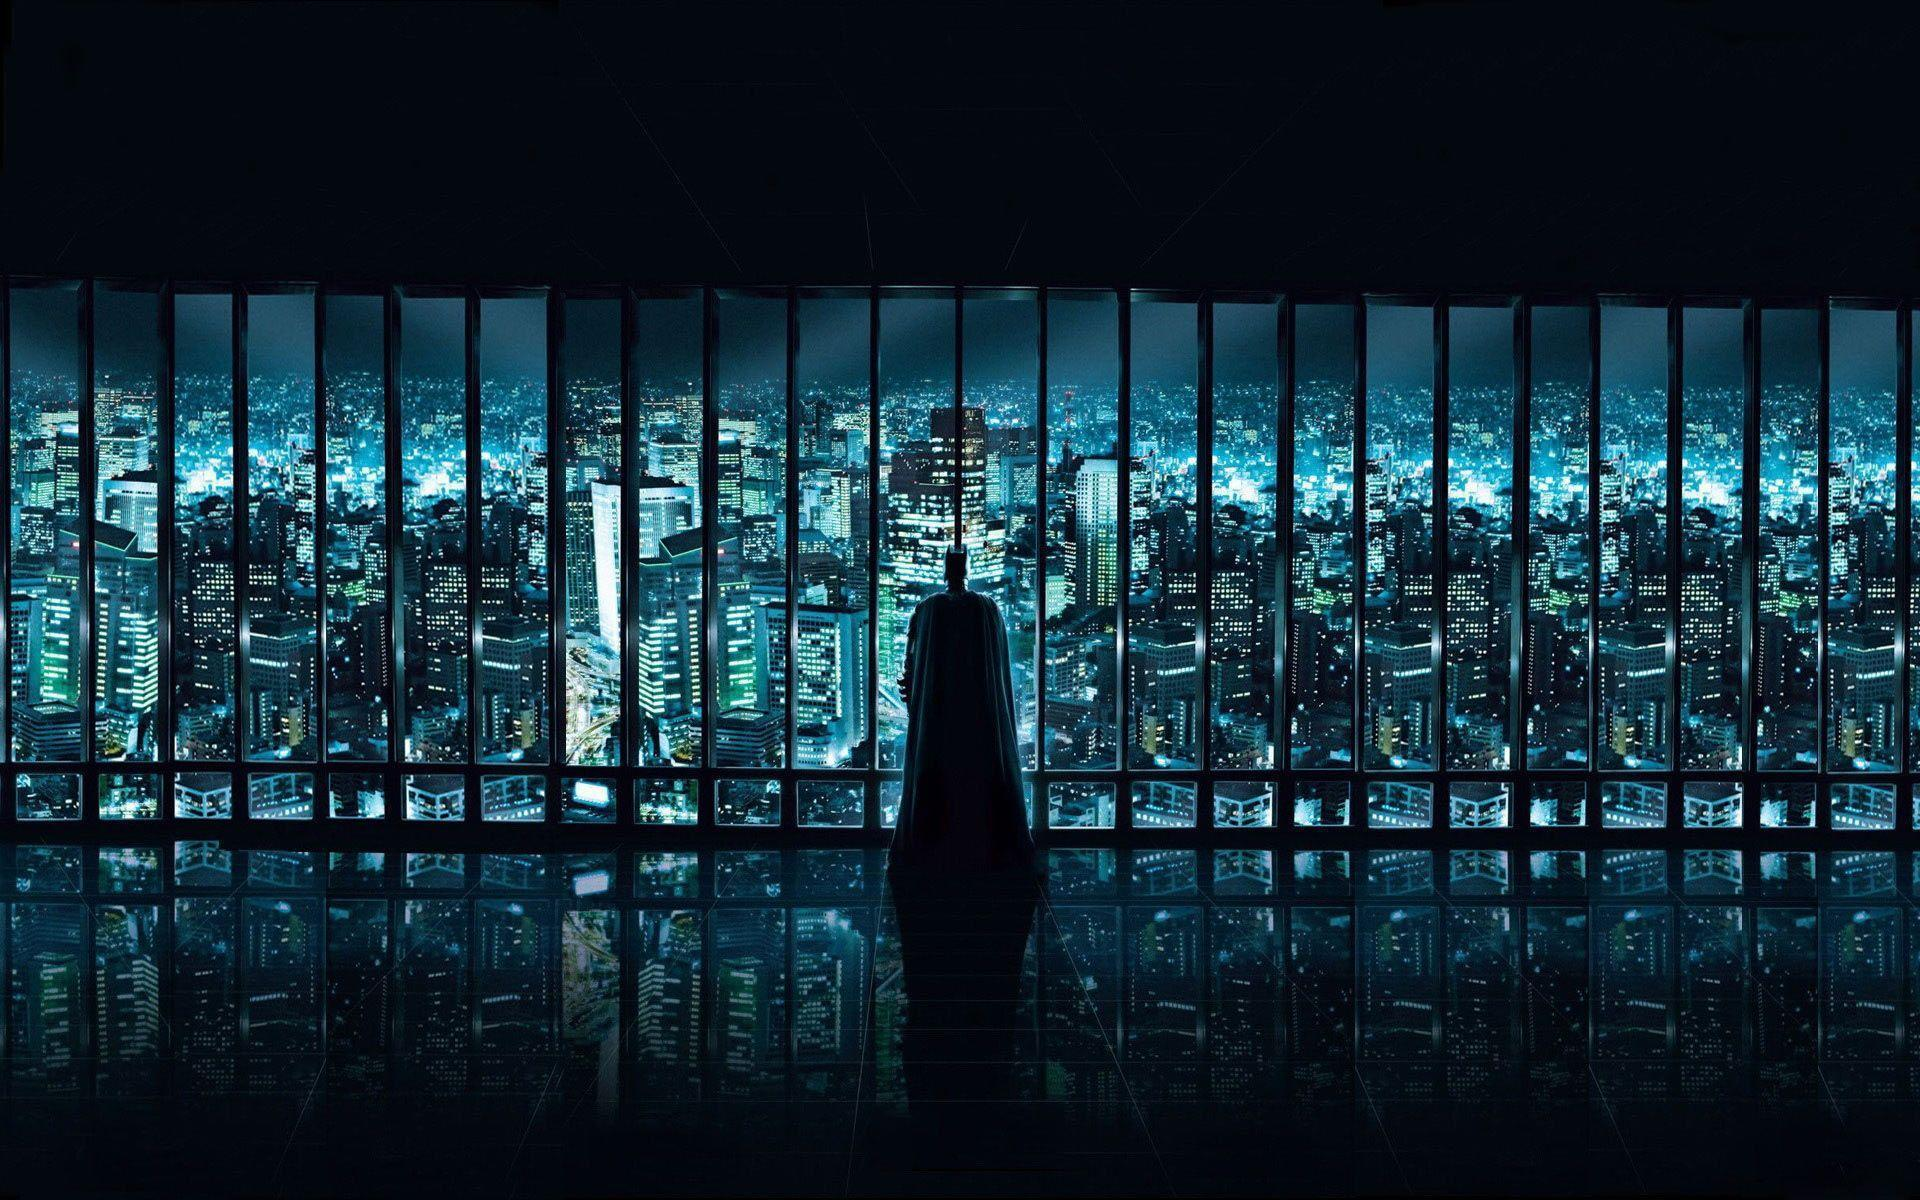 Desktop Wallpaper · Gallery · Movies & TV · New Batman movie ...